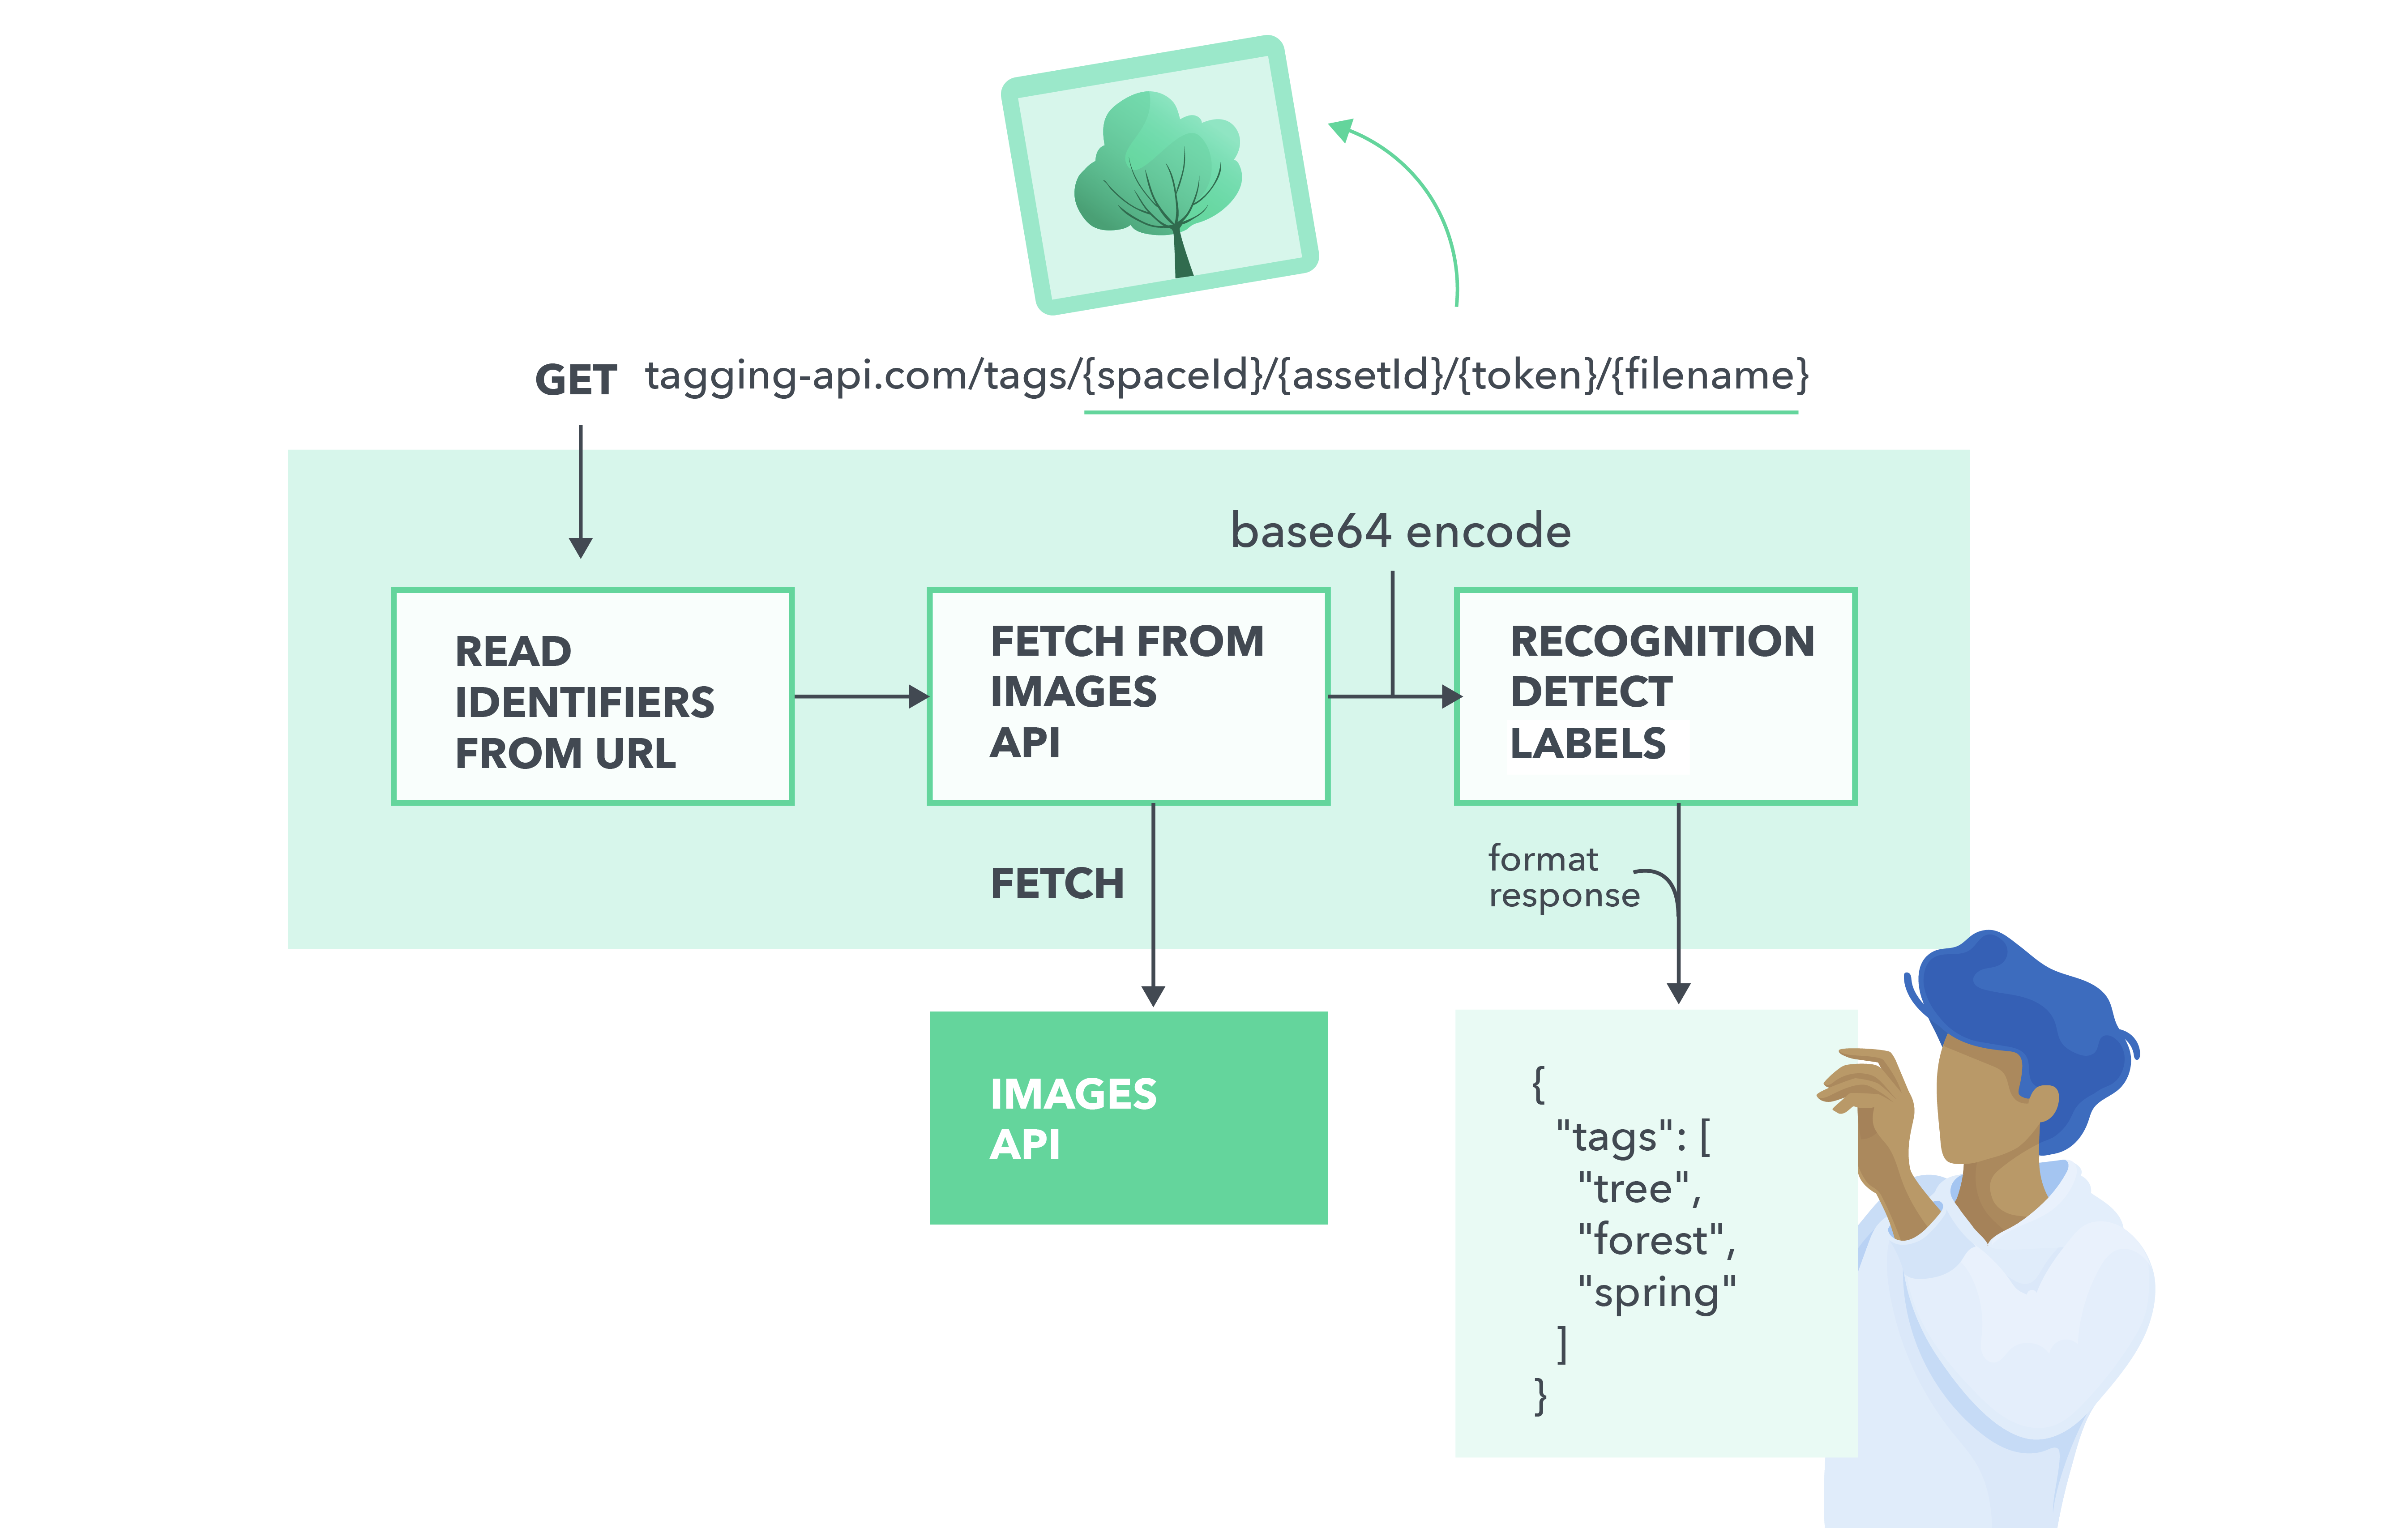 Flowchart describing how images get tagged by AI image tagging api